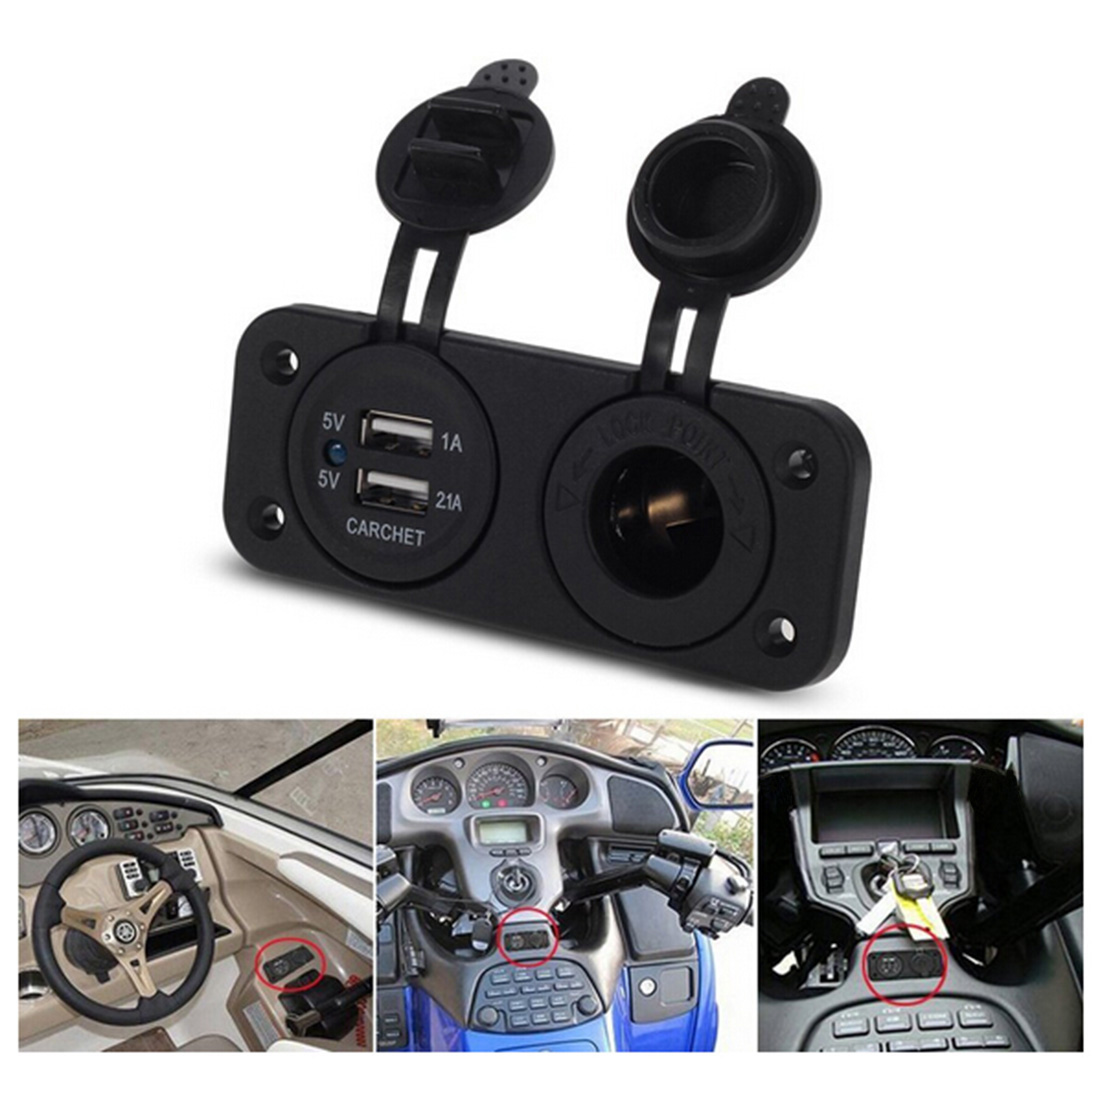 Dewtreetali <font><b>Car</b></font> <font><b>Charger</b></font> Dual USB <font><b>Cigarette</b></font> Lighter Socket Splitter <font><b>12V</b></font> <font><b>Charger</b></font> Power Adapter Outlet Accessories For iPad Phone G image